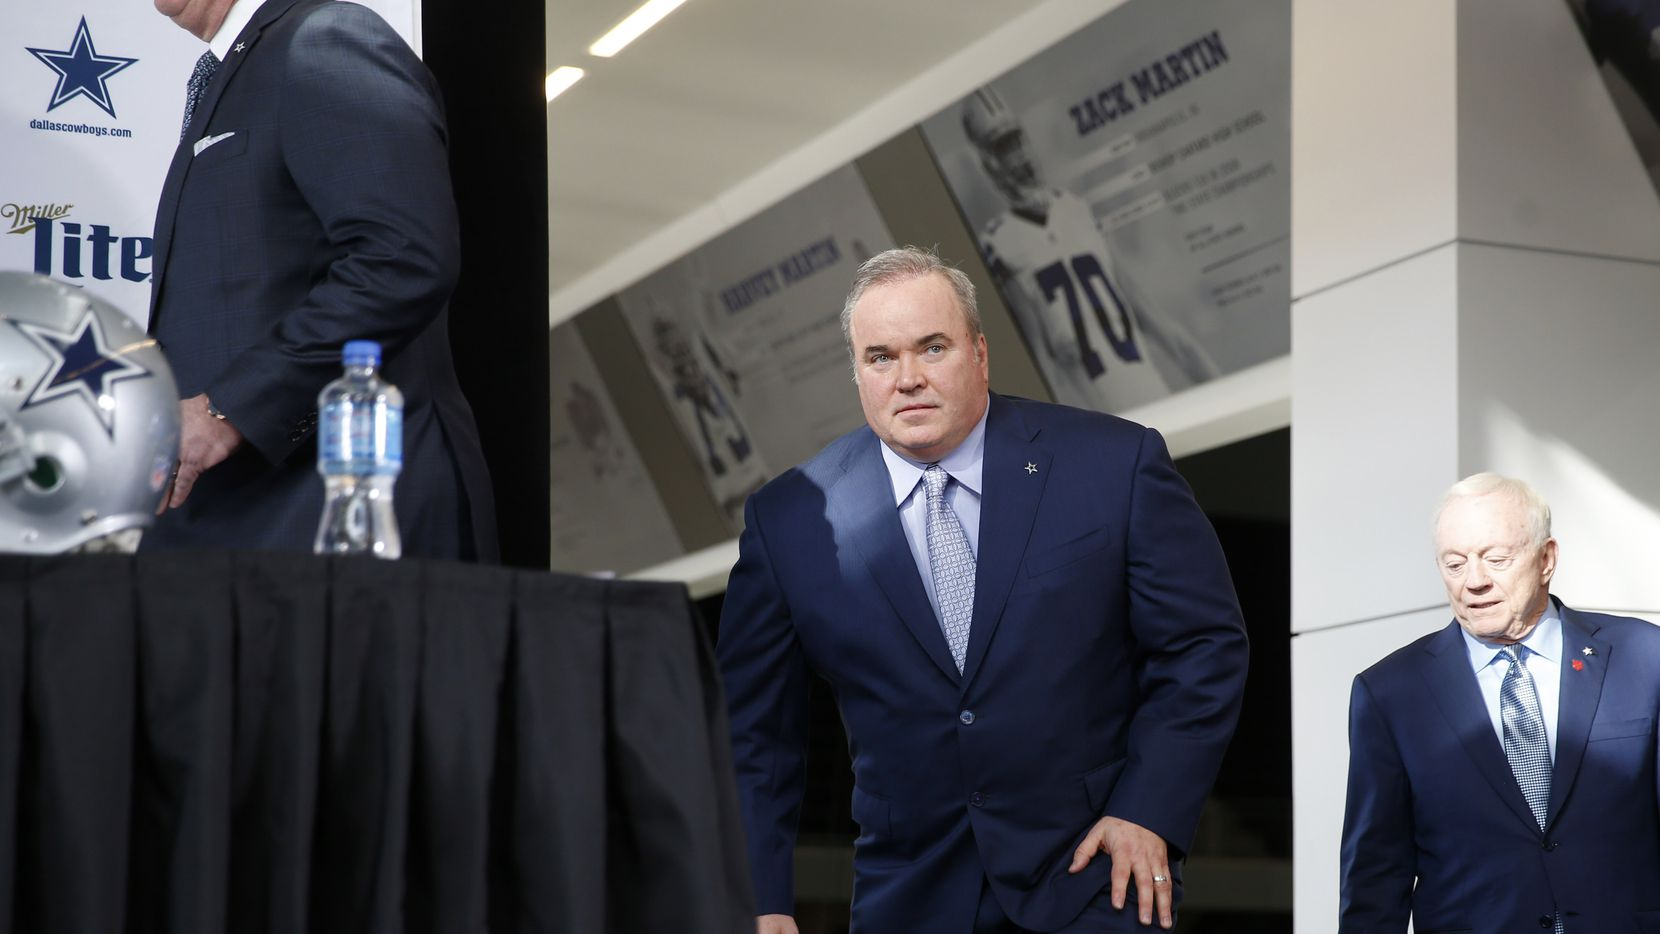 FILE - Cowboys head coach Mike McCarthy makes his way to the stage before a press conference in the Ford Center at The Star in Frisco on Wednesday, Jan. 8, 2020.